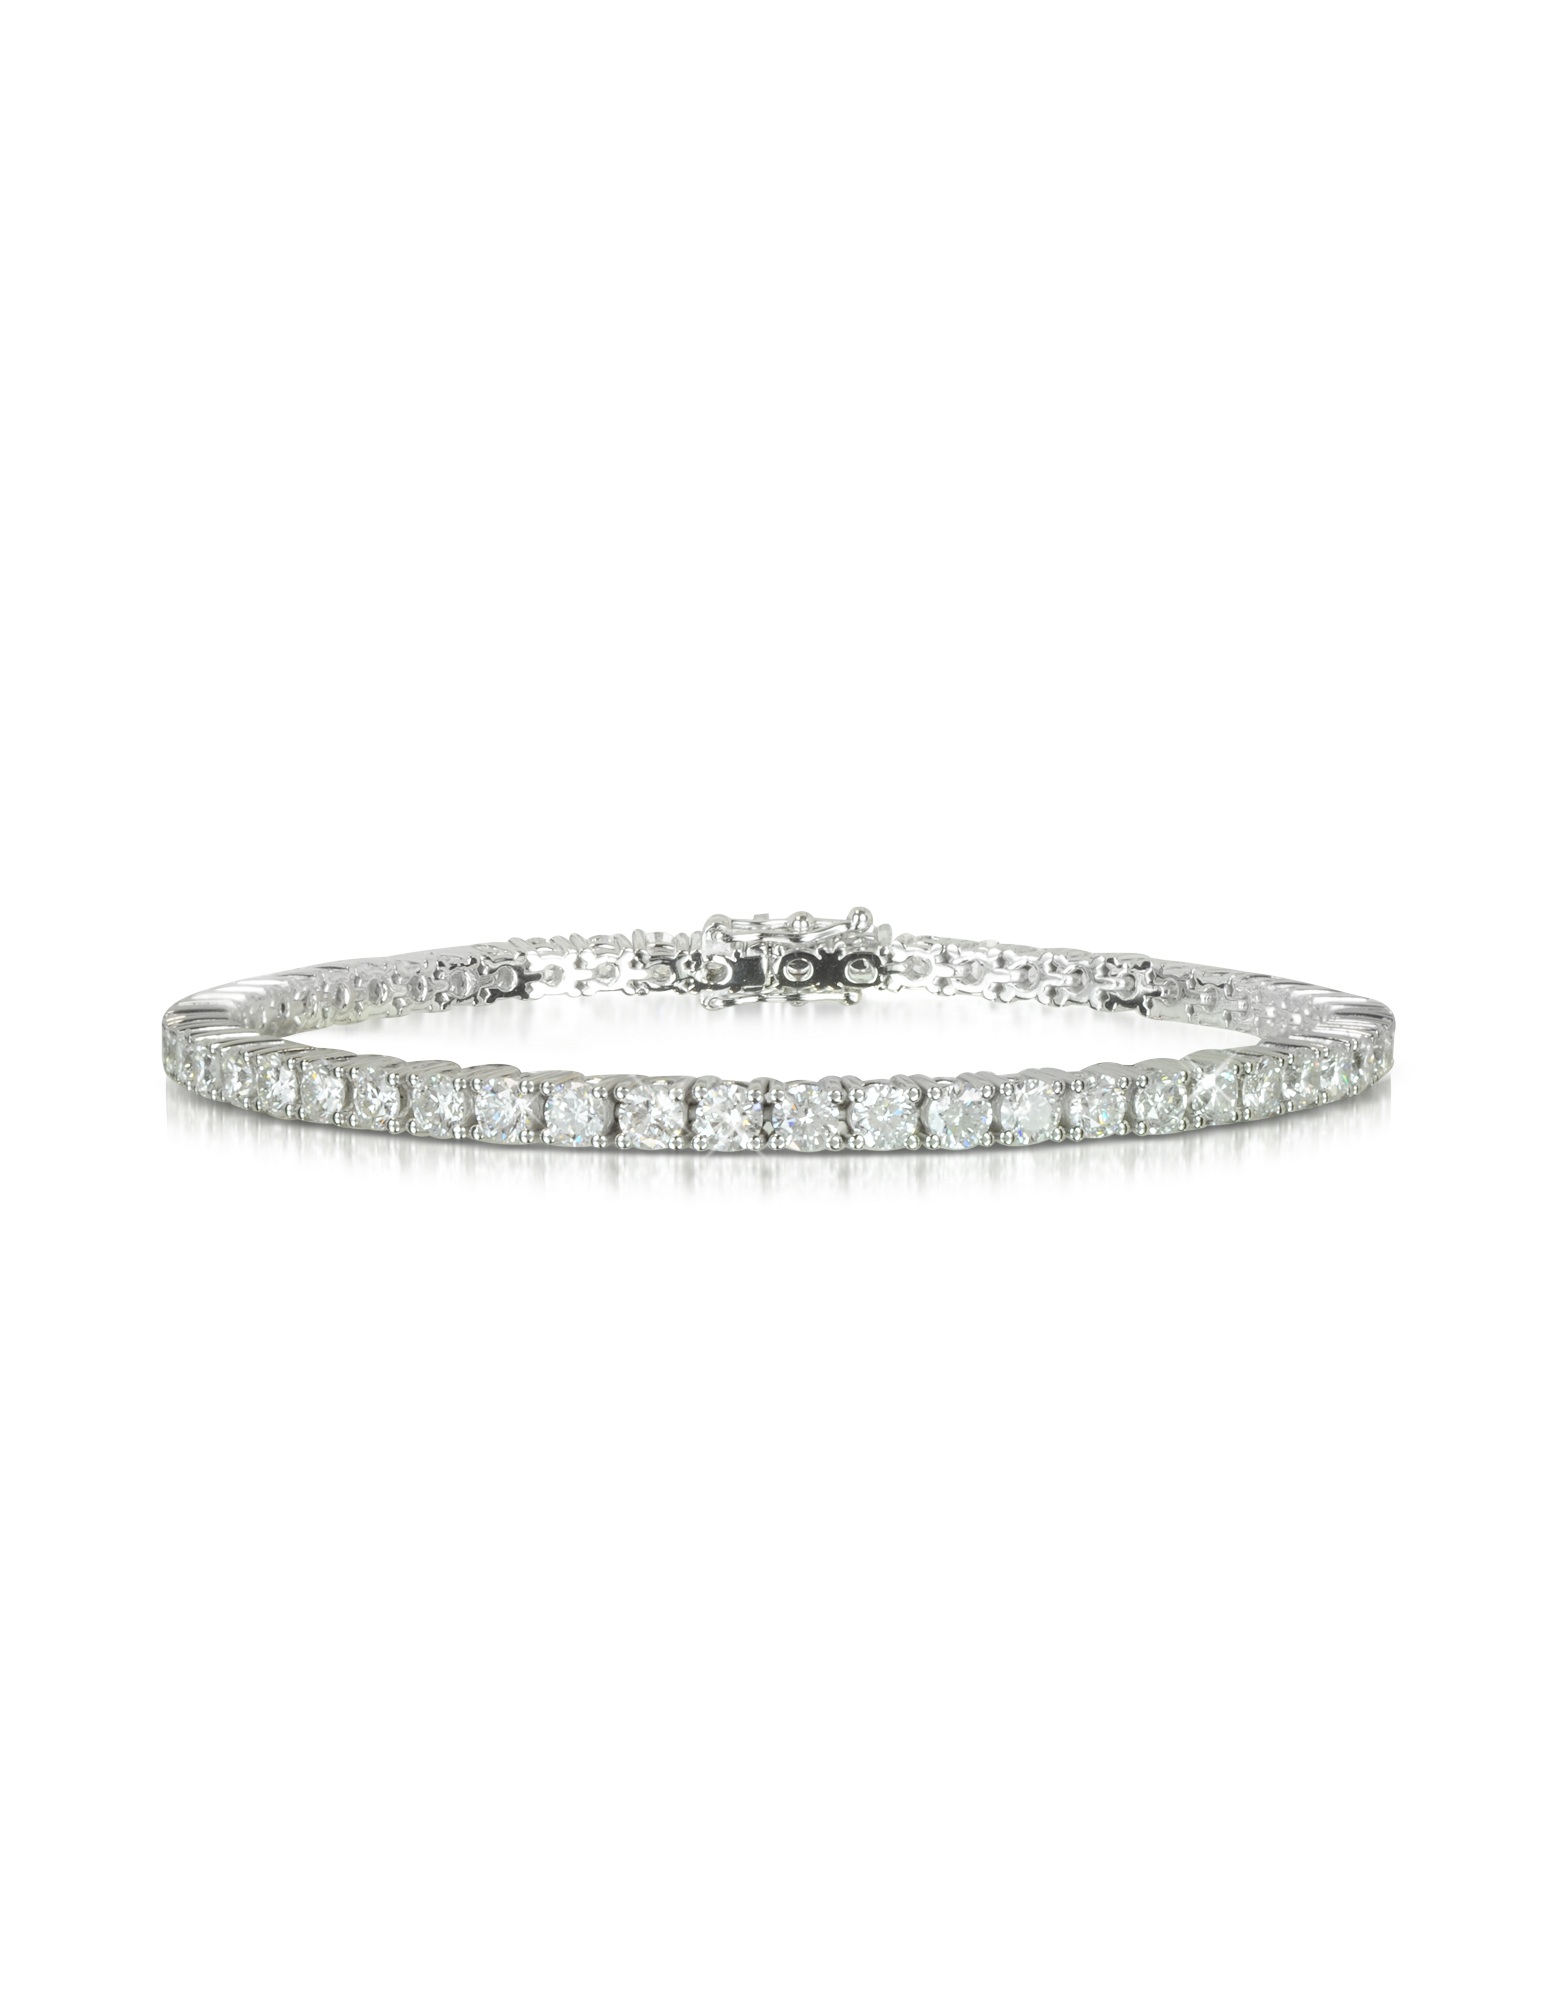 Image of 5.30 ctw Diamond 18K White Gold Tennis Bracelet